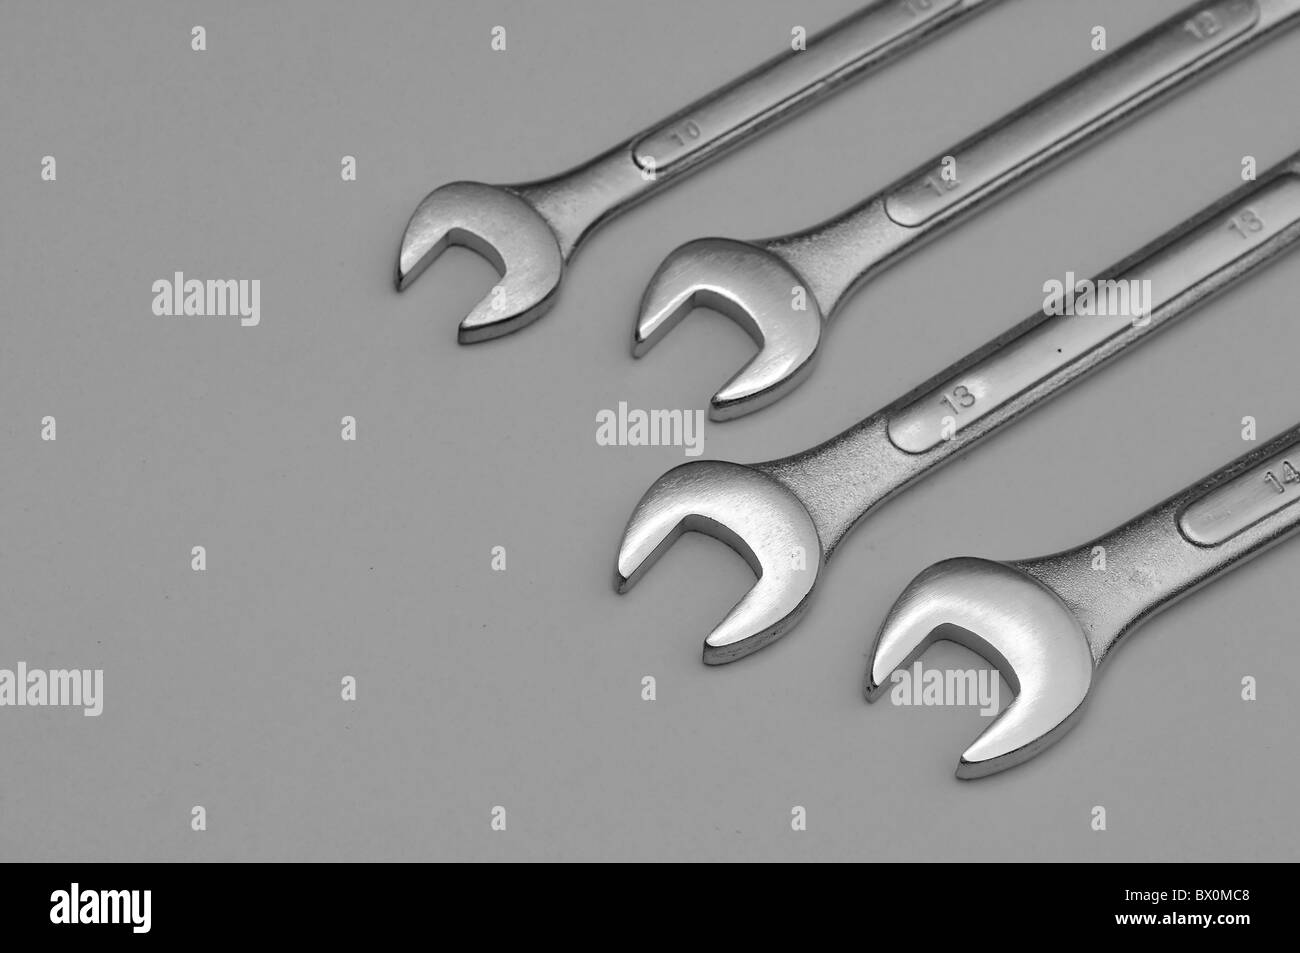 A set of spanners isolated on a light background - Stock Image